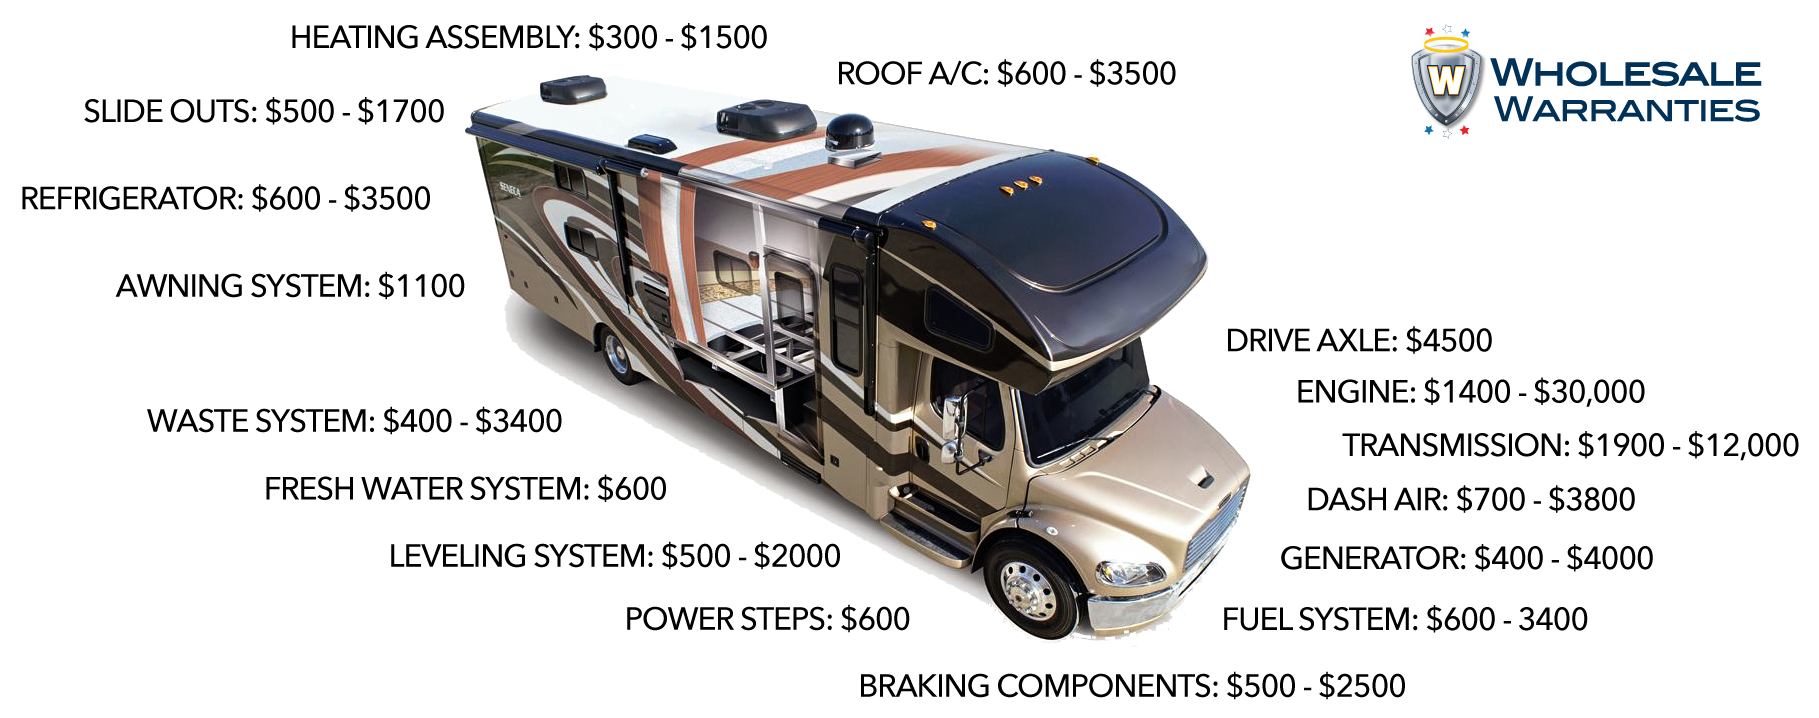 Http 2018 10 13t195641000000 Rv Plumbing Diagram Have A 1987 17 Bigfoot Travel Trailer Rvcosts